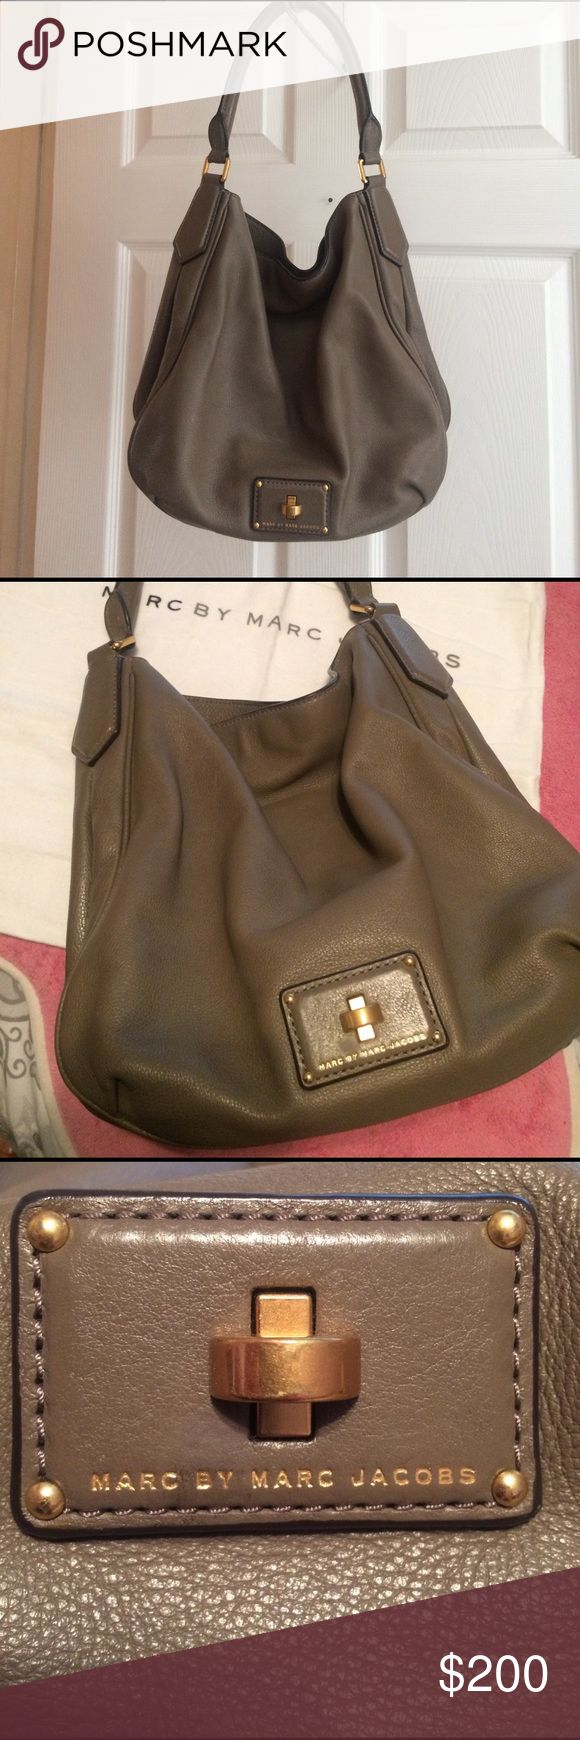 💕SALE💕 Marc Jacobs Hobo Shoulder Bag💕 Marc by Marc Jacobs bag is in great condition! Has been gently used and has no signs of wear or cracking on the handle or bottom of the bag. Dark interior and beautiful taupe color on the outside! Offers welcome but please NO lowballing. Marc Jacobs Bags Hobos